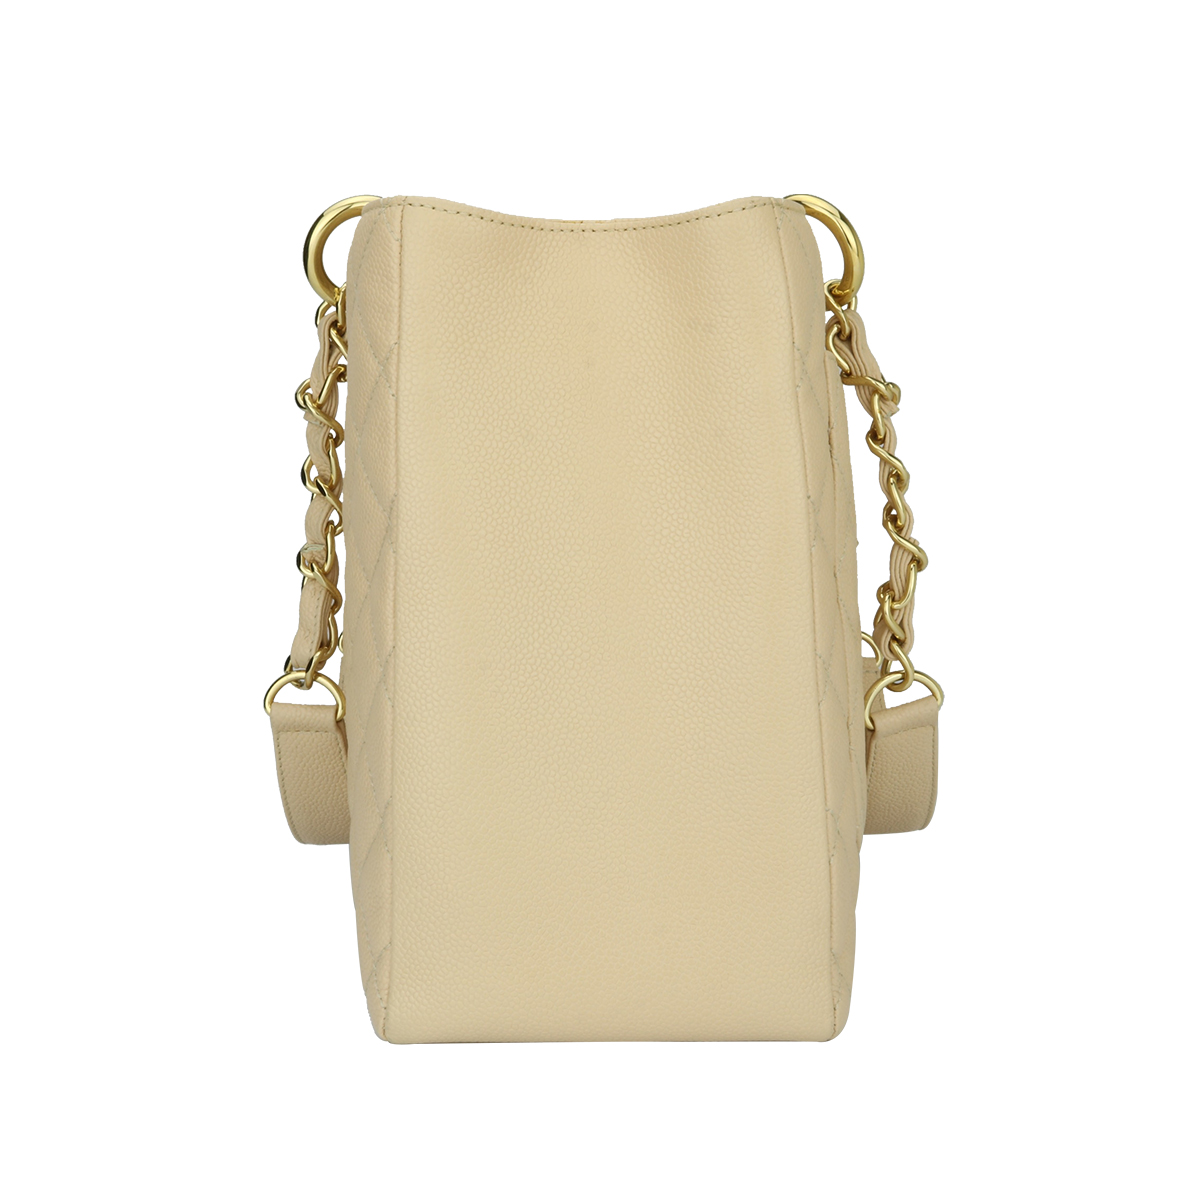 a08c3491dfba Home/Chanel/CHANEL Grand Shopping Tote (GST) Beige Clair Caviar Gold  Hardware 2014. ; 